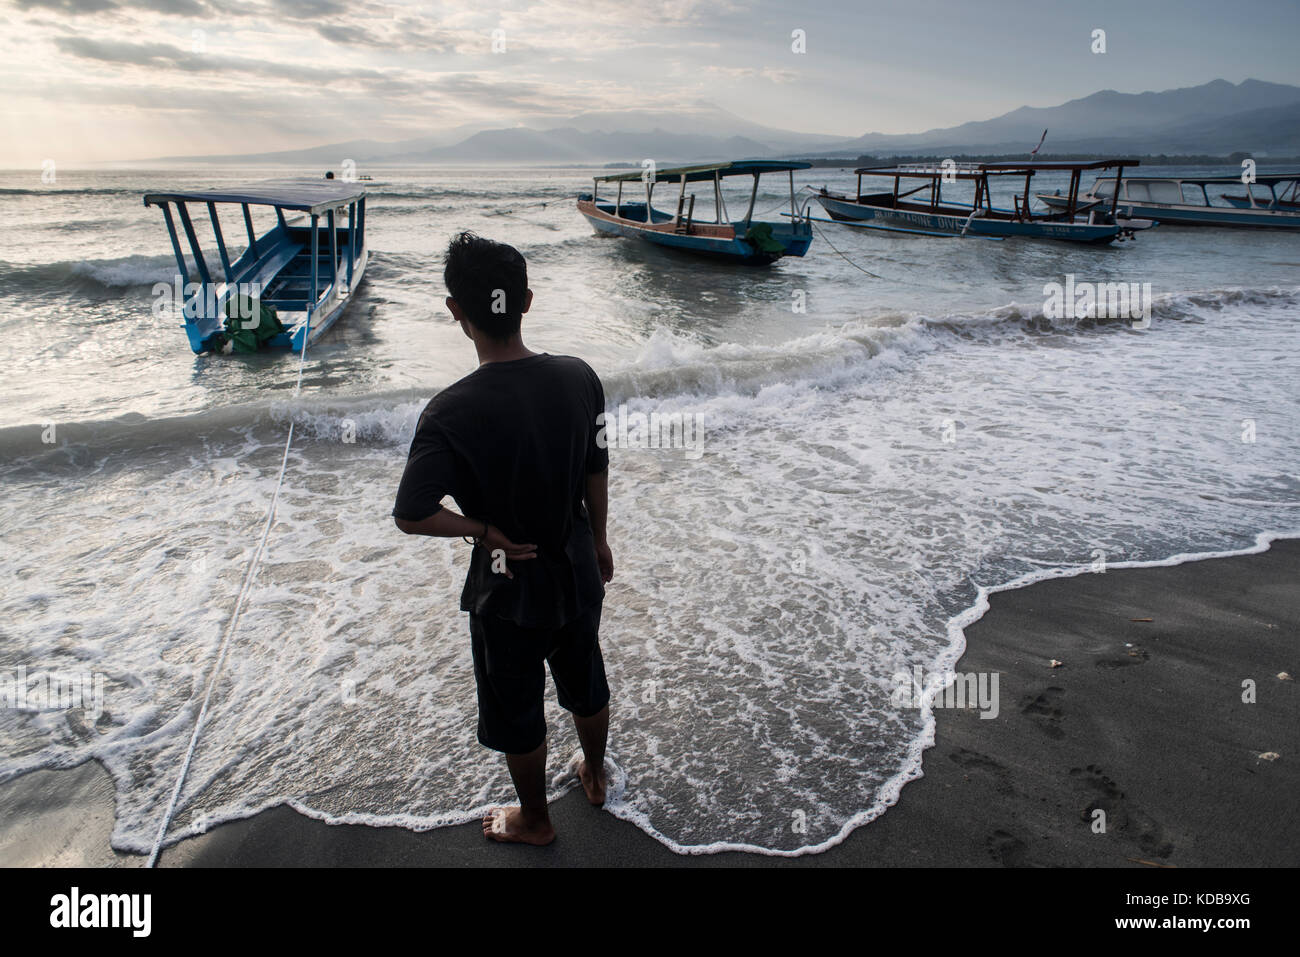 A local men checks his wooden boats during bad weather in Gili Air, Gili Islands, Indonesia. - Stock Image